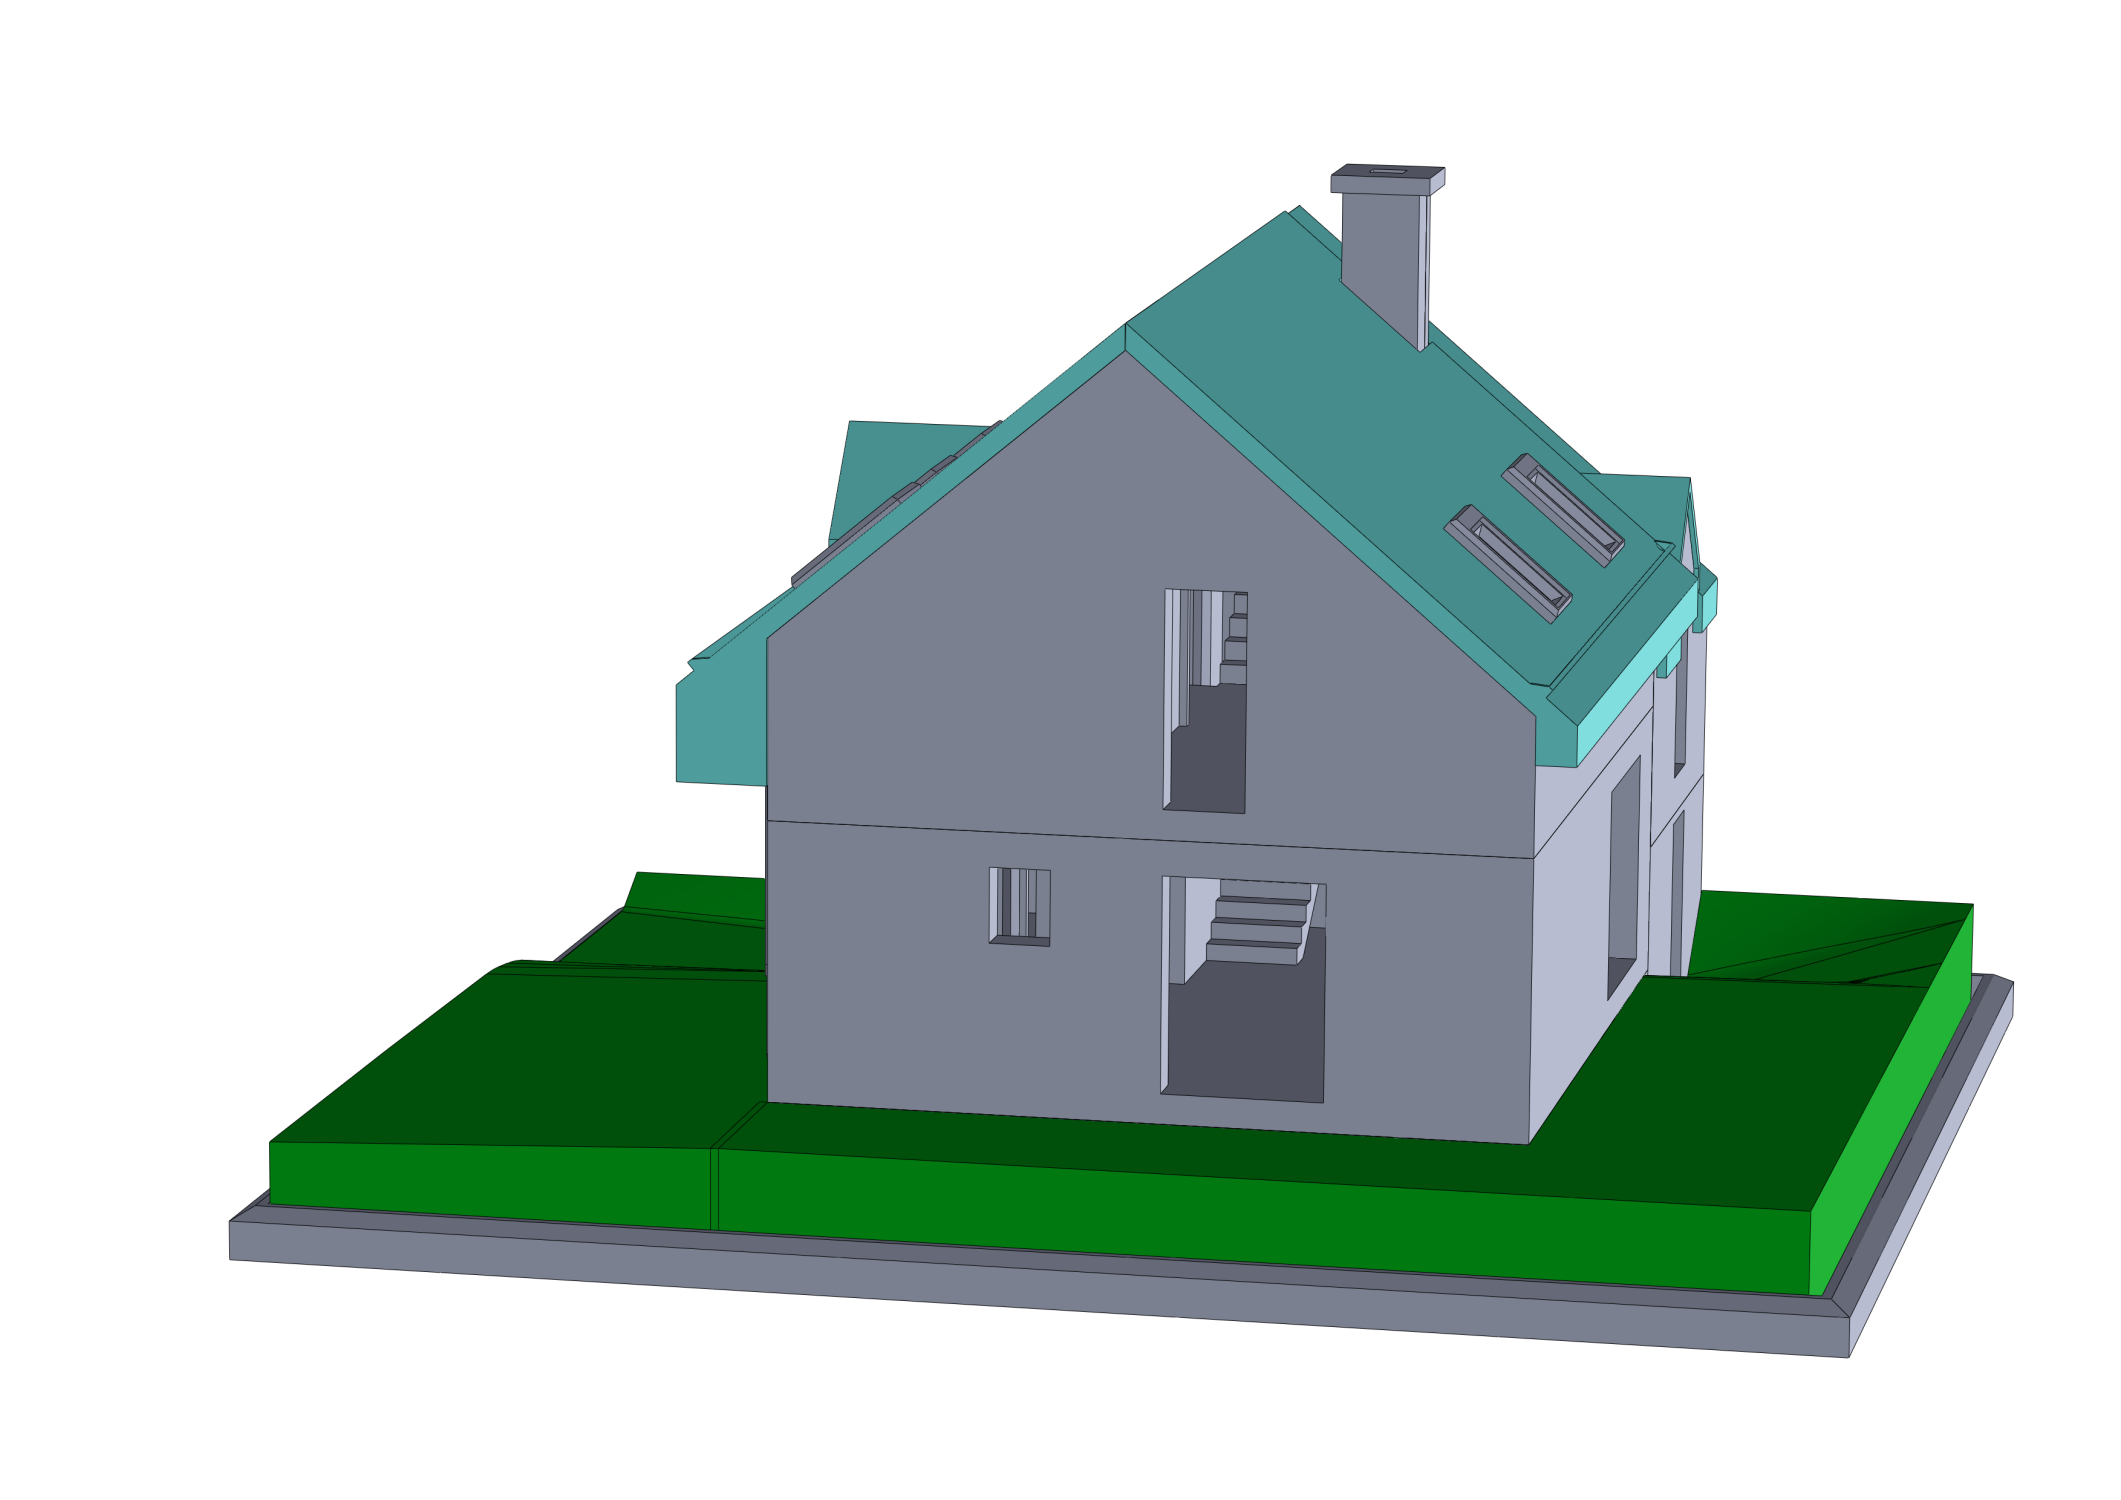 assemblage_maison_montee_2.png Download free STL file Semi-detached house • 3D printer model, mcbat